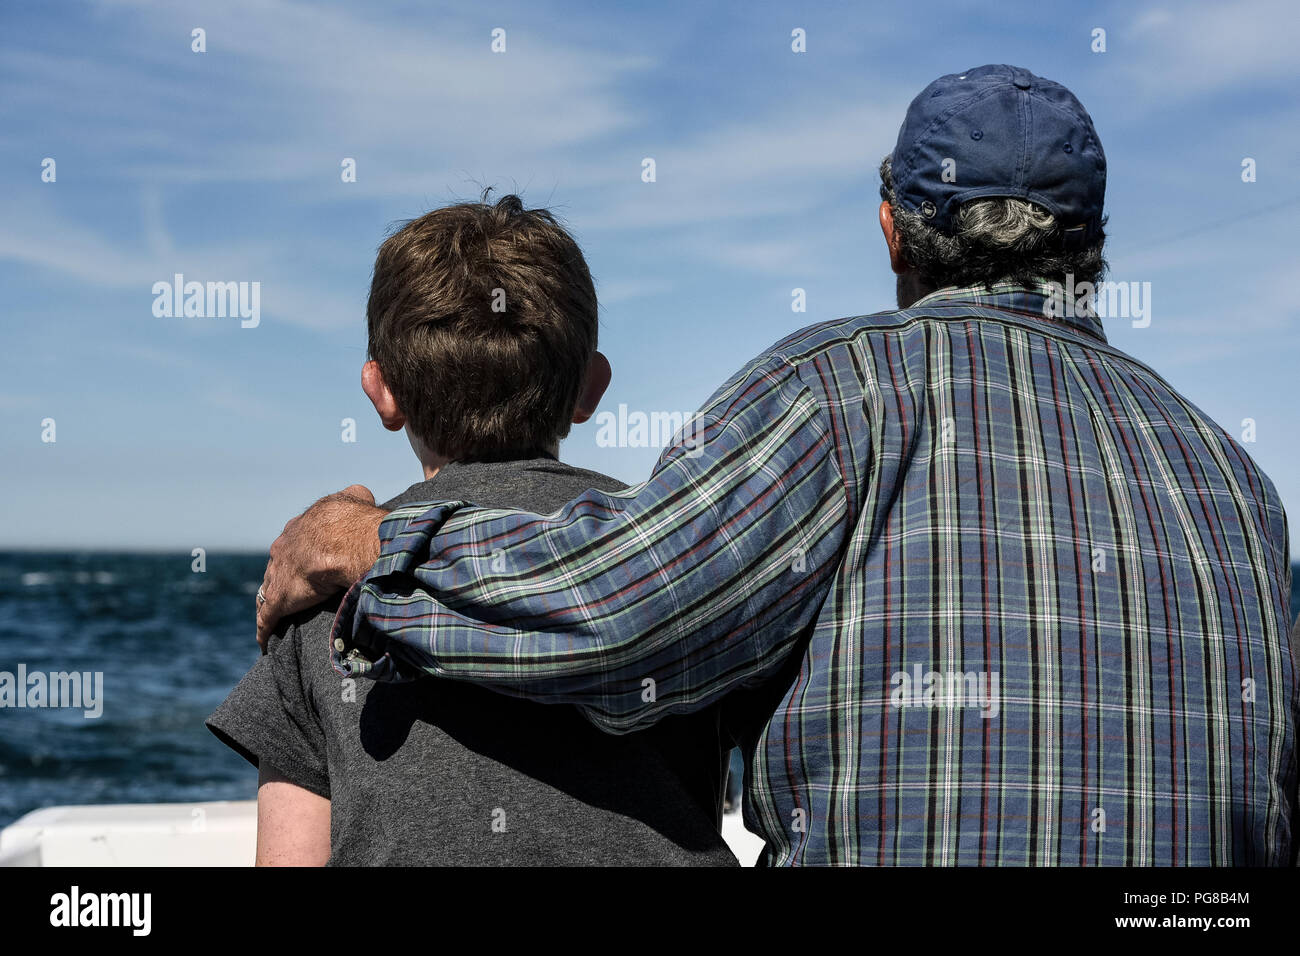 Father and son bonding on a charter fishing trip. - Stock Image